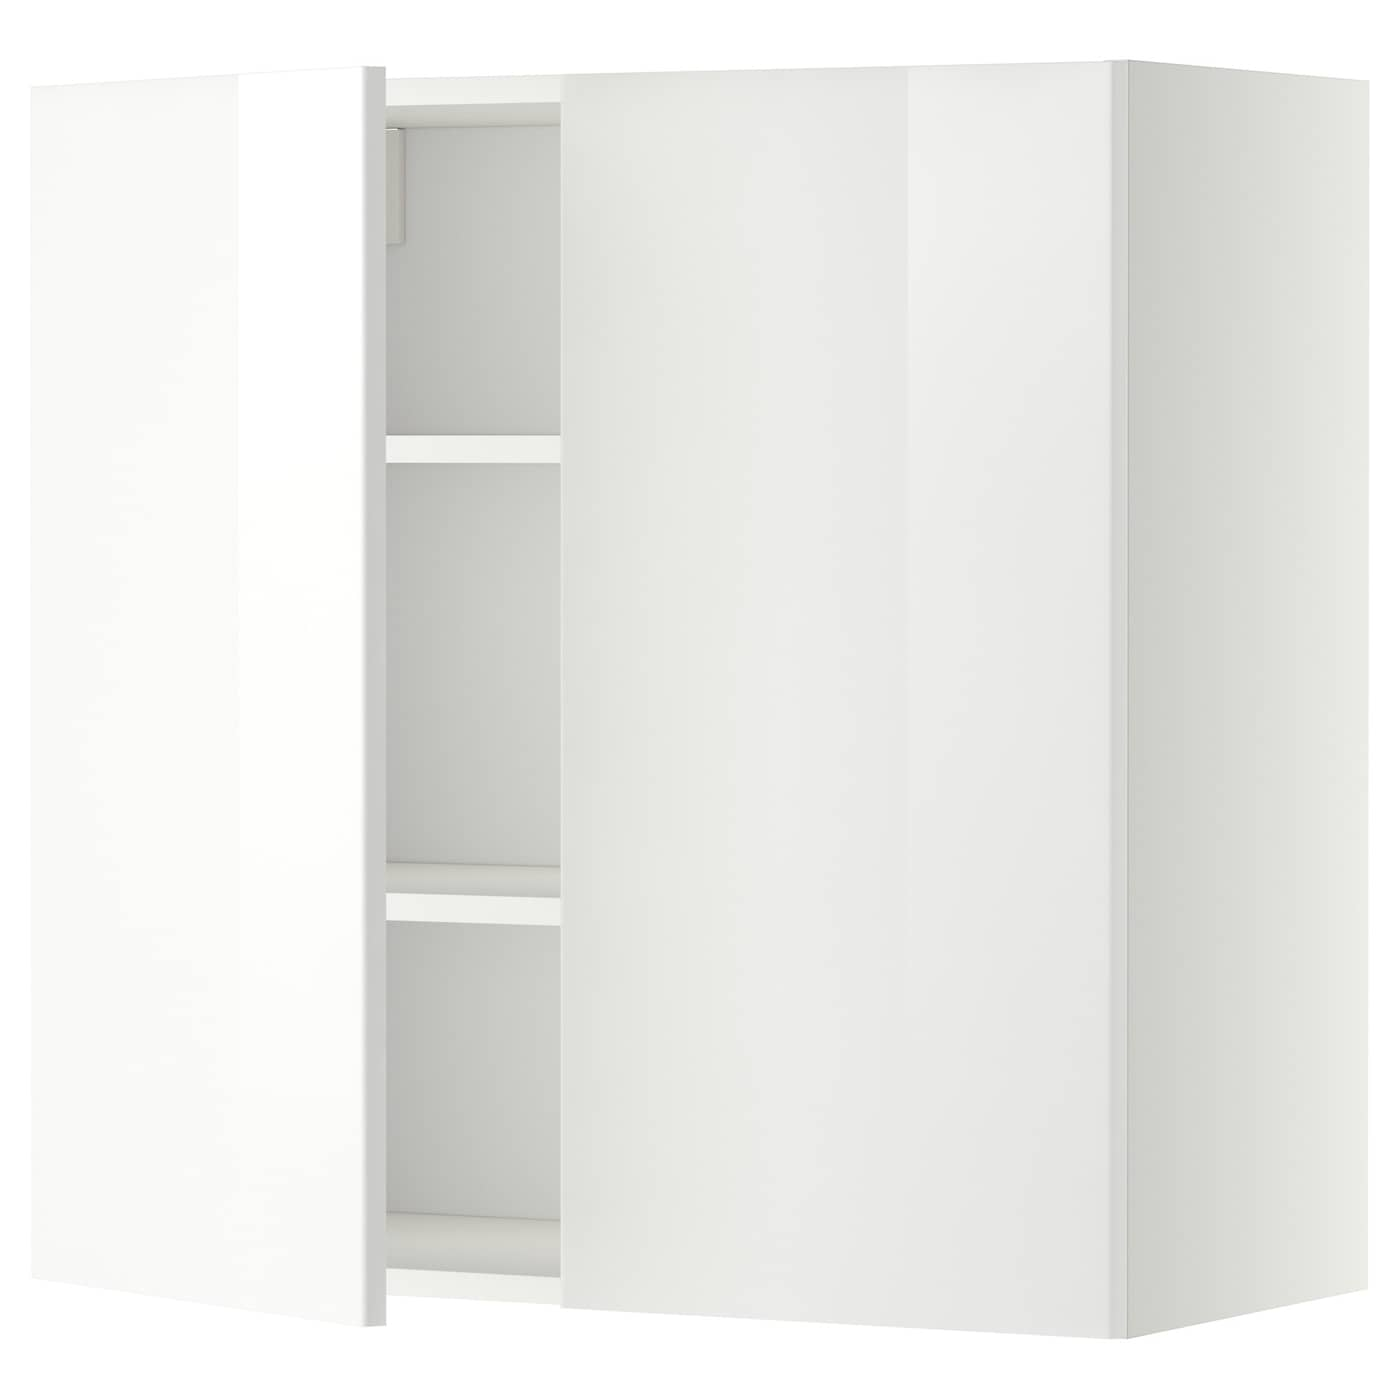 metod wall cabinet with shelves 2 doors white ringhult. Black Bedroom Furniture Sets. Home Design Ideas